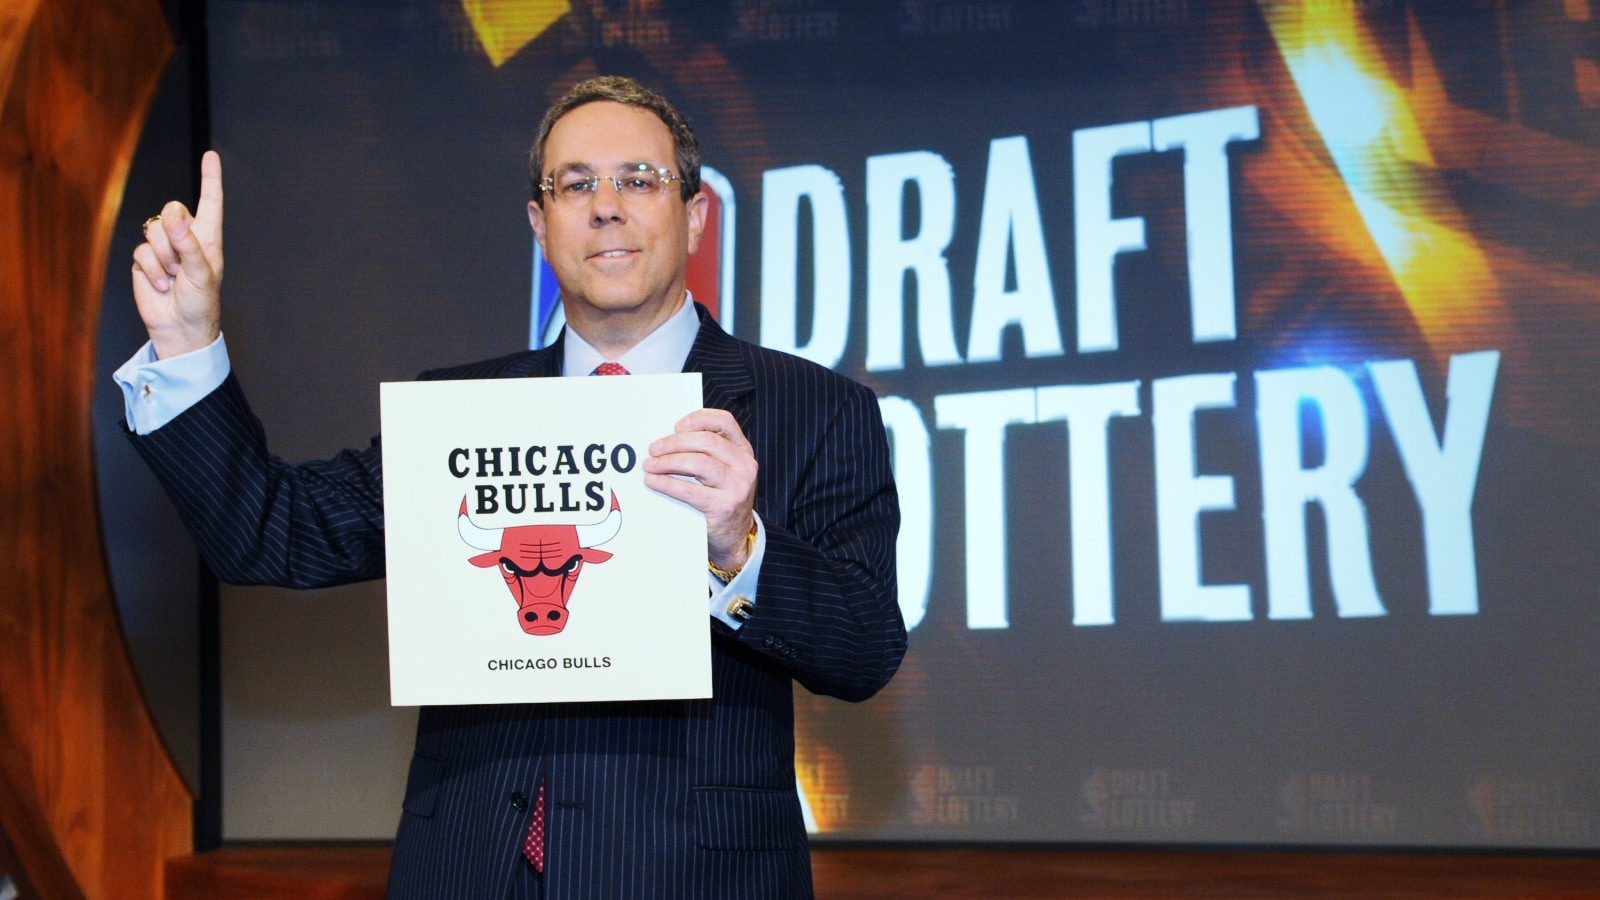 Steve Schanwald celebrates the Bulls receiving the number one pick in the 2008 NBA Draft Lottery